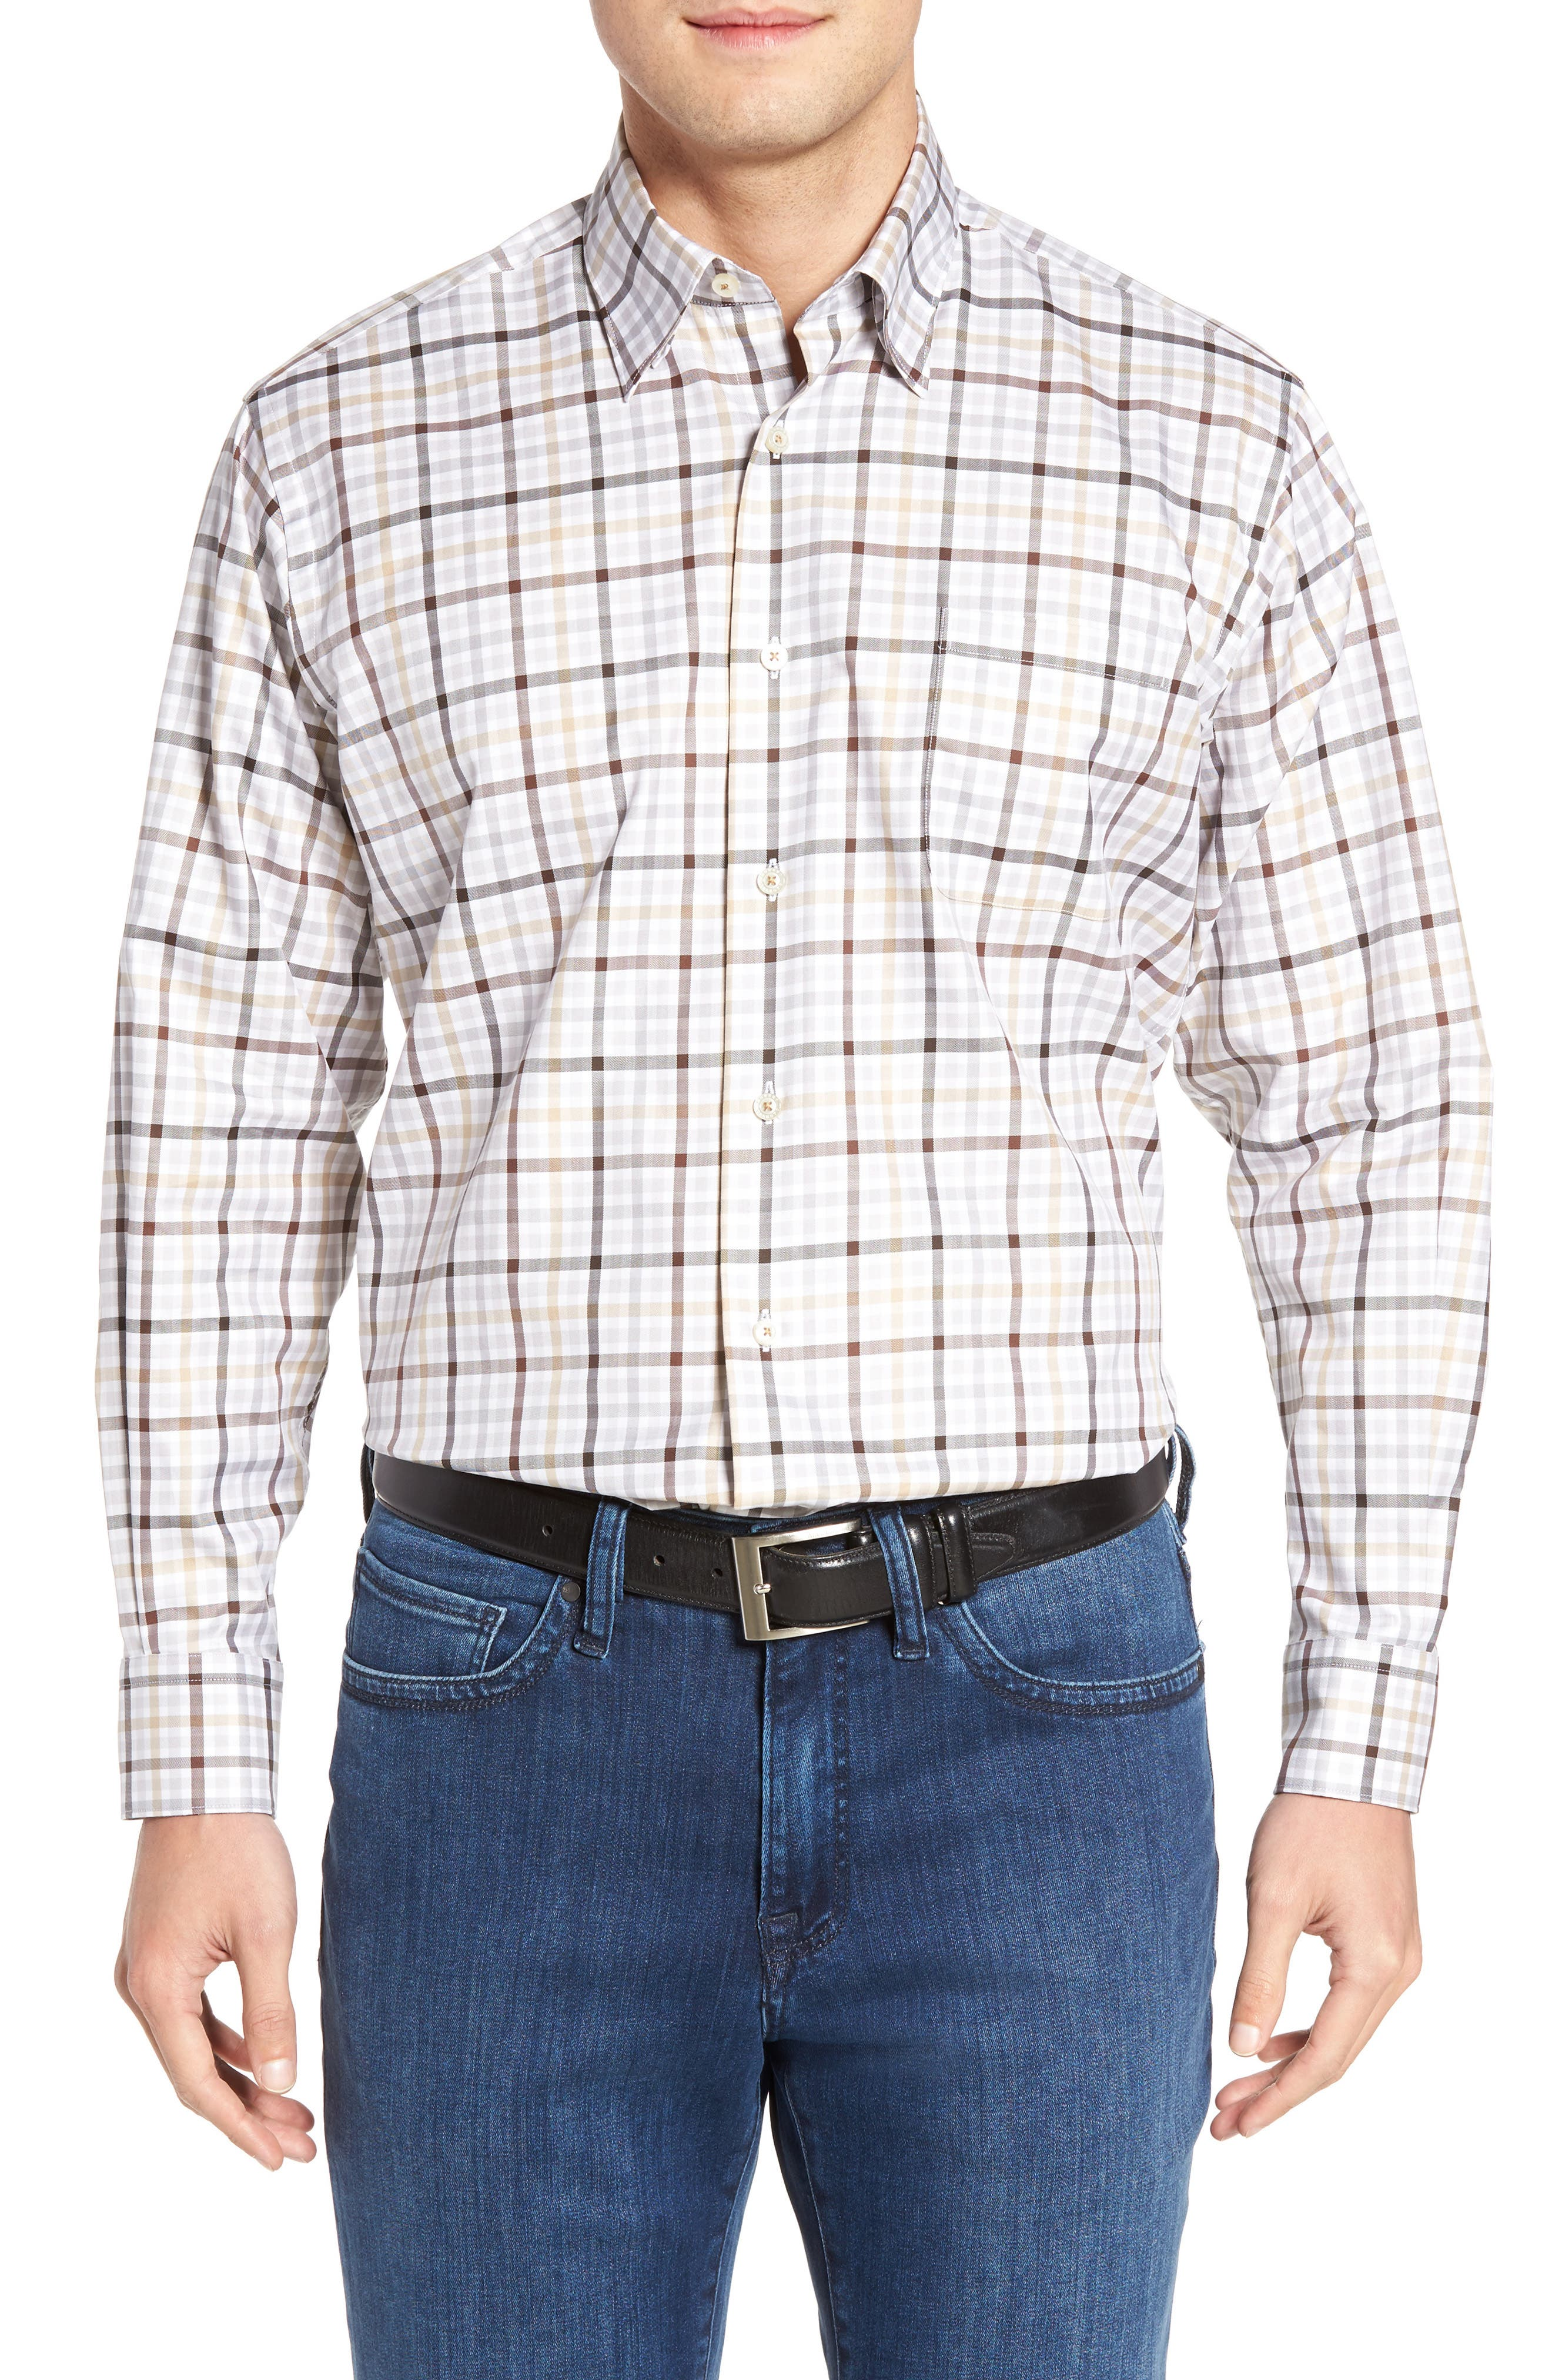 Anderson Classic Fit Plaid Micro Twill Sport Shirt,                             Main thumbnail 1, color,